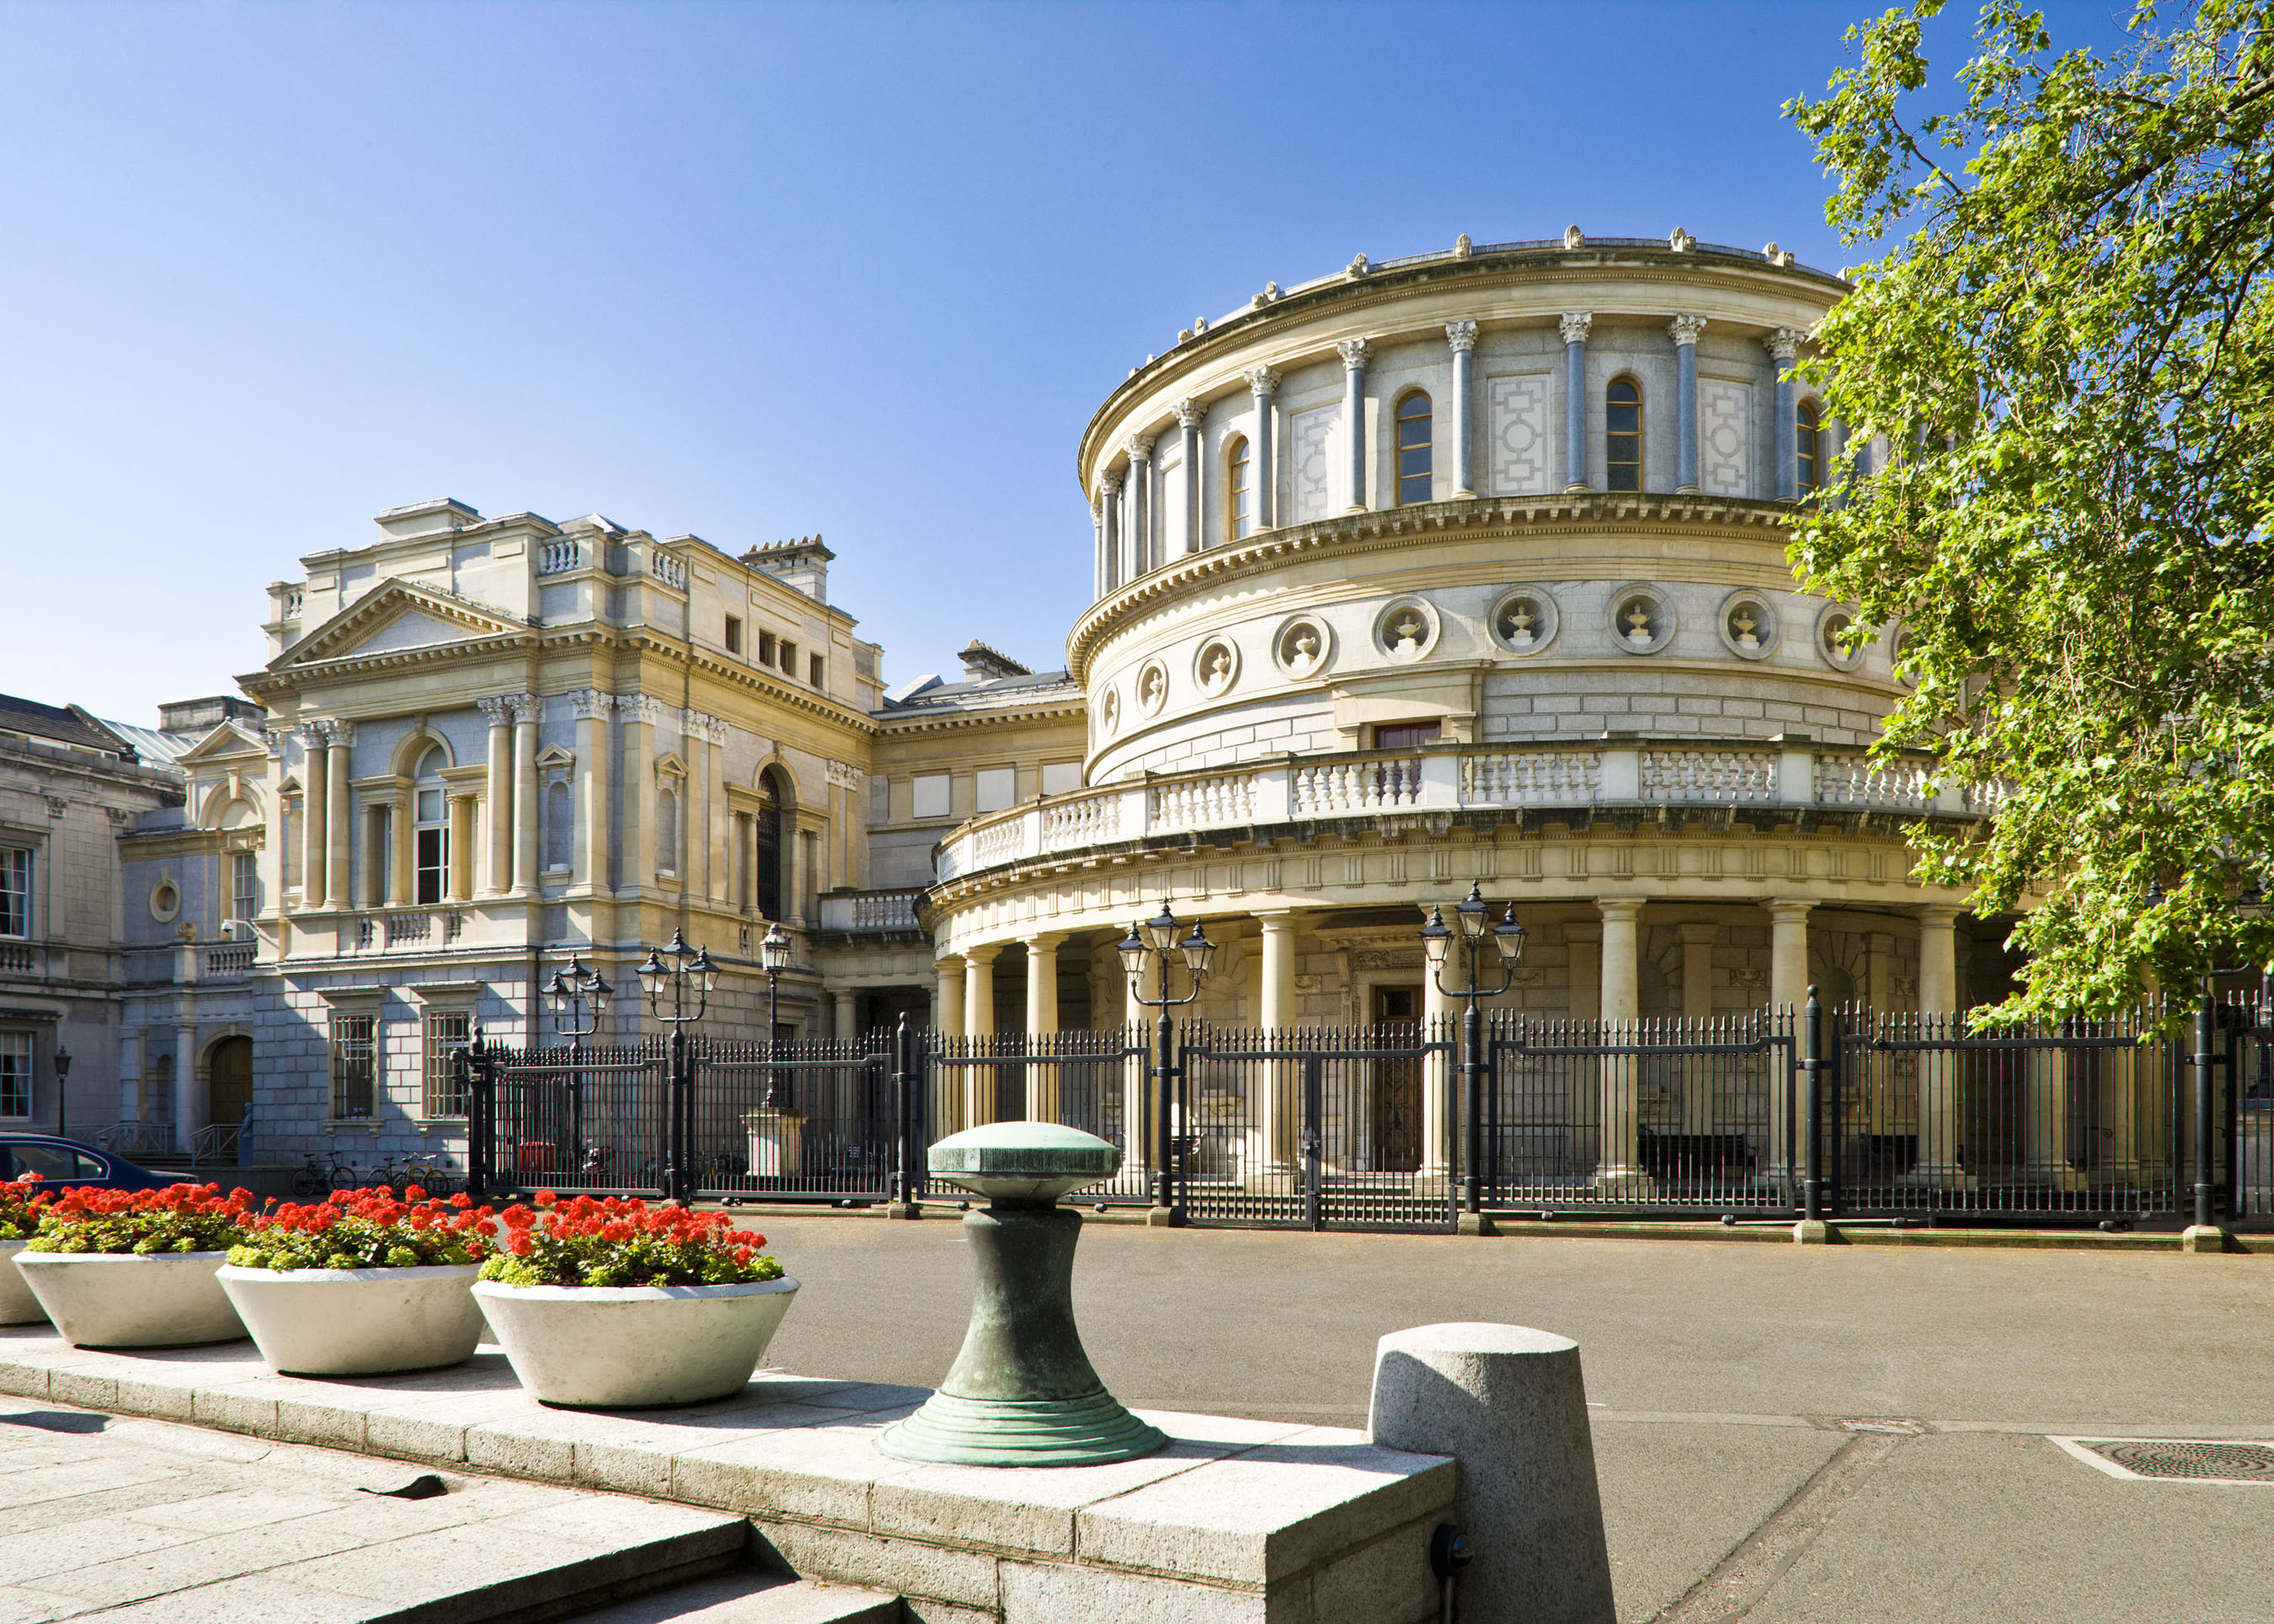 The National Museum of Ireland is among the best galleries and museums in Dublin